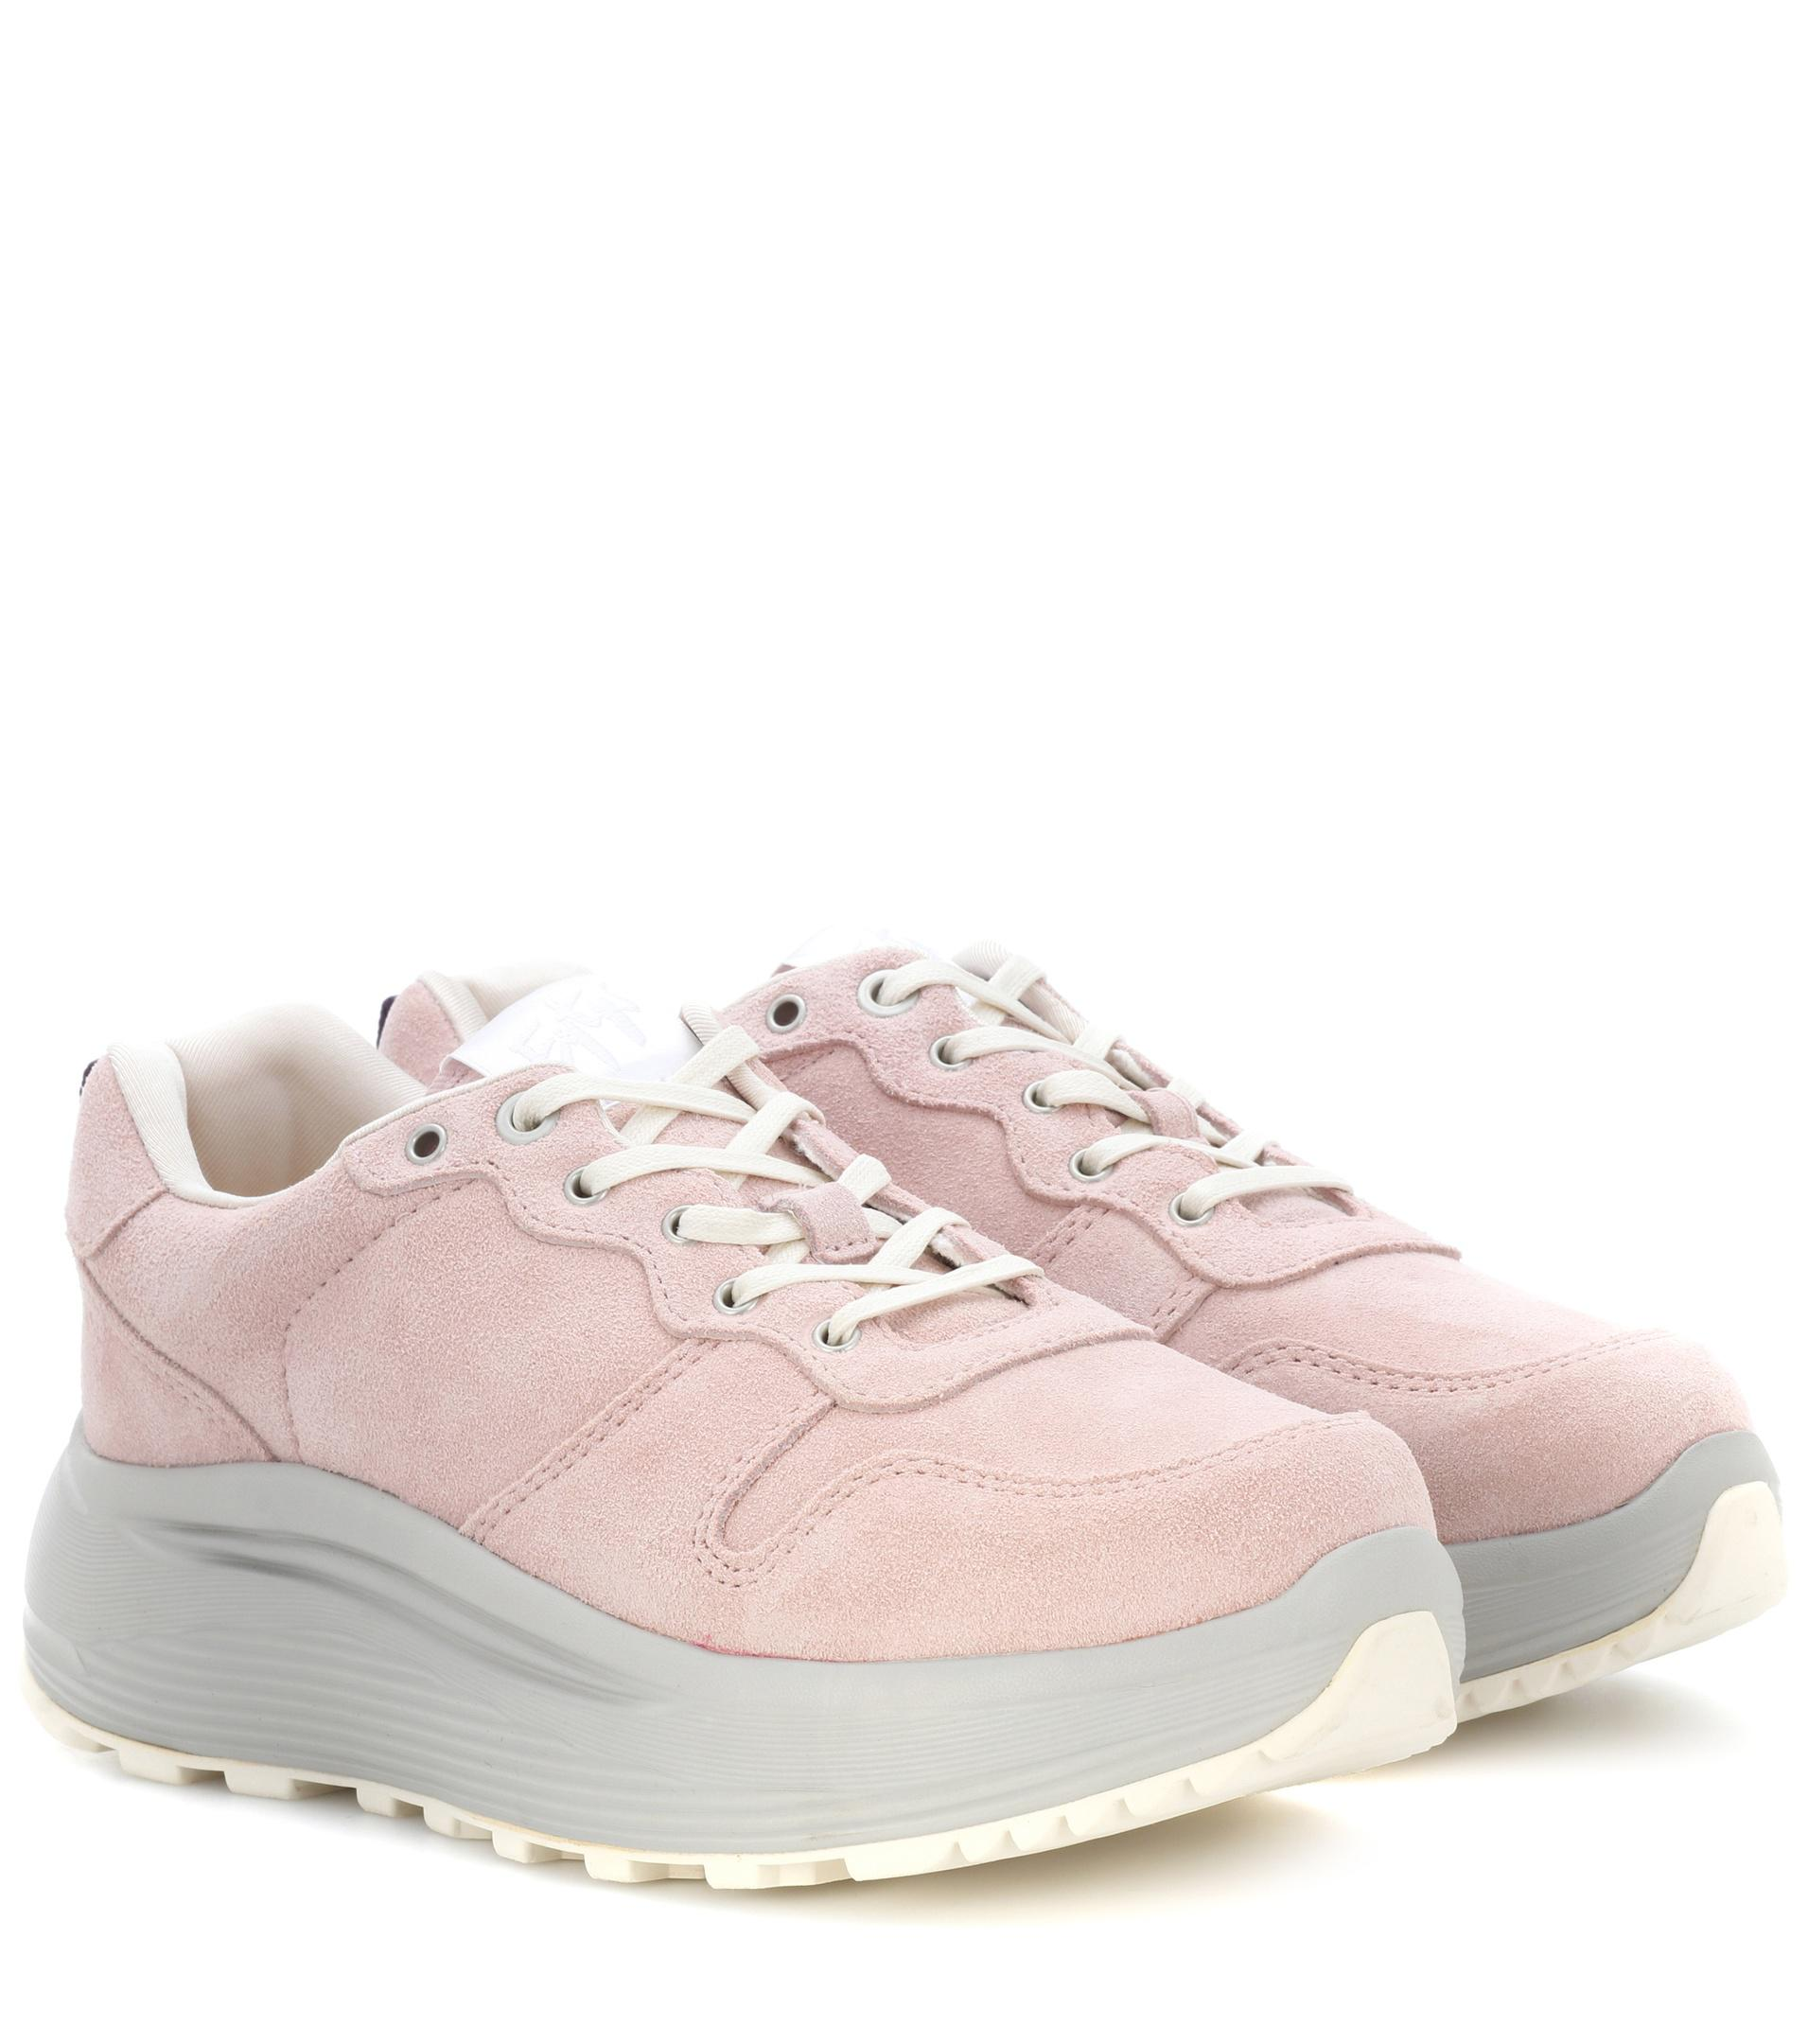 b35a590a84 Eytys Jet Combo Suede Sneakers in Pink - Lyst